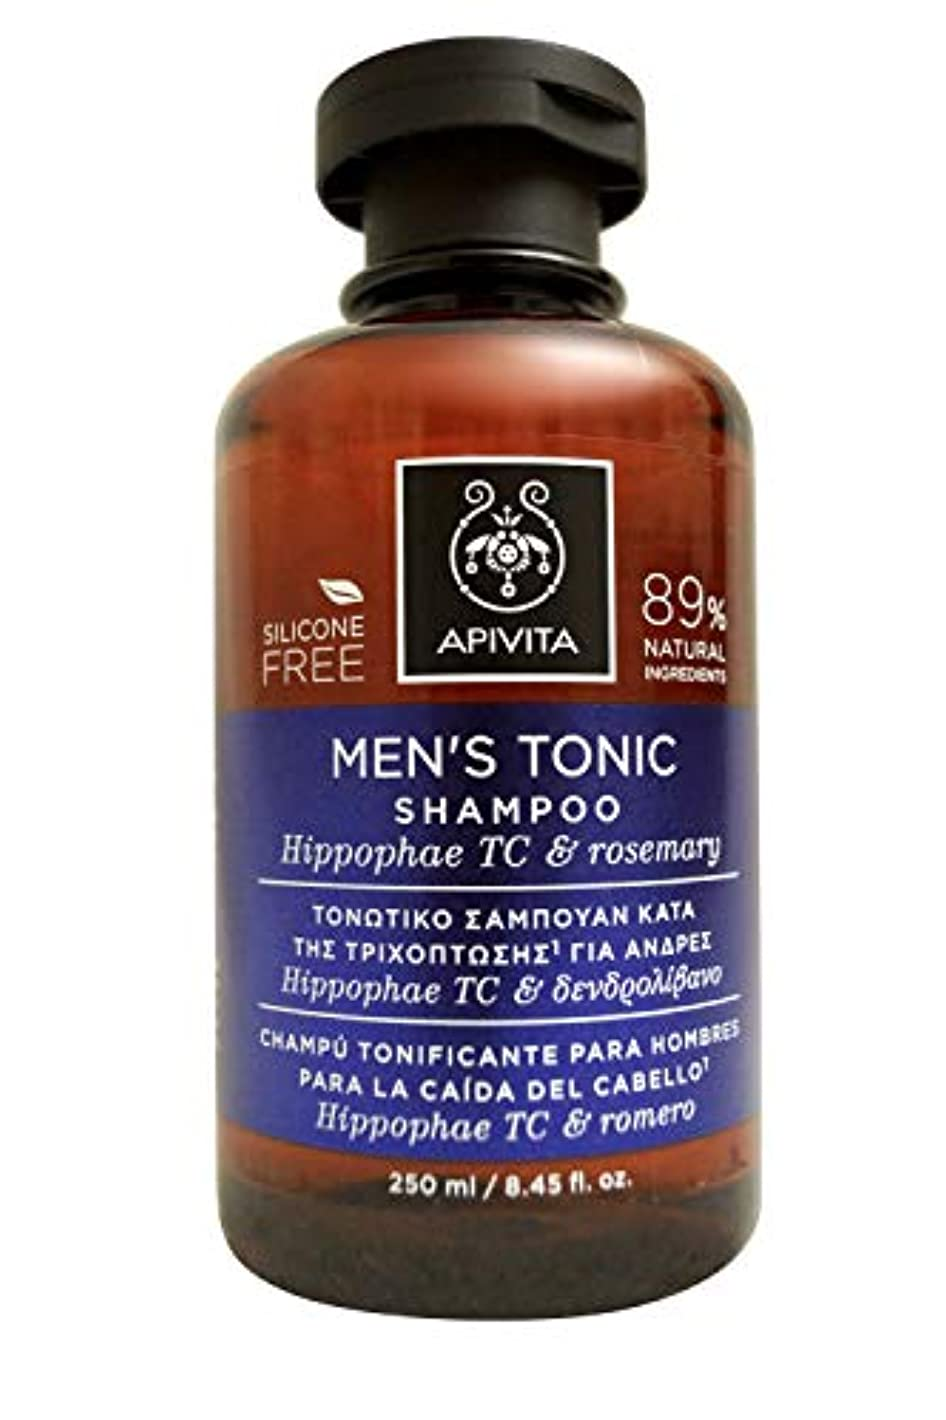 ヶ月目集中的な刈り取るアピヴィータ Men's Tonic Shampoo with Hippophae TC & Rosemary (For Thinning Hair) 250ml [並行輸入品]